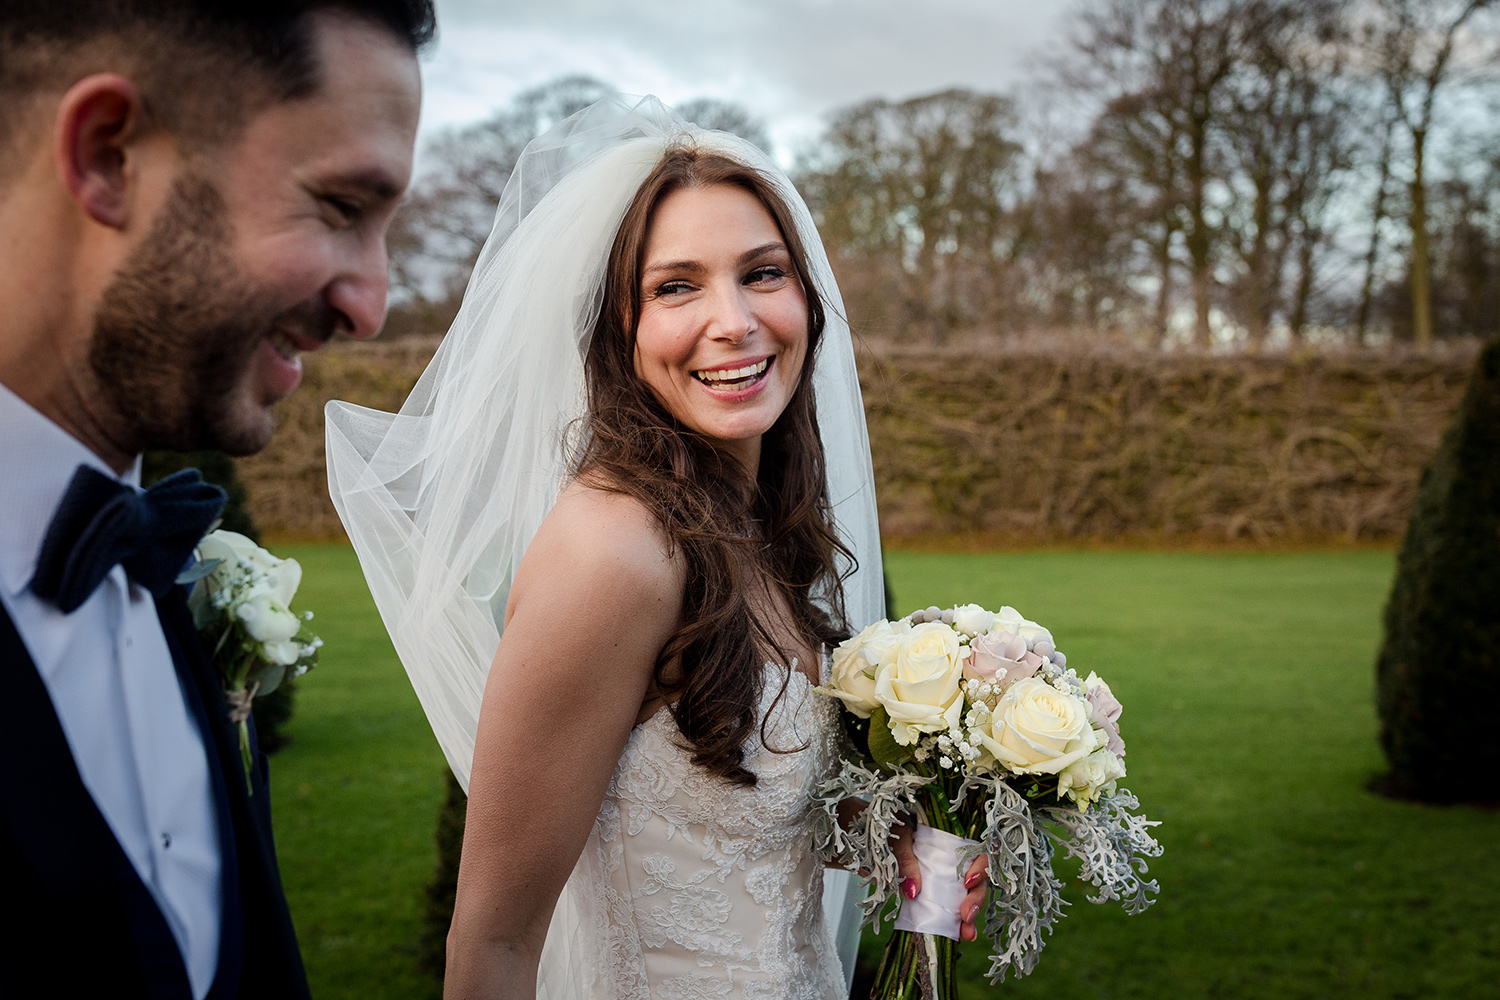 The bride and groom go for a stroll within the grounds of Knowsley Hall